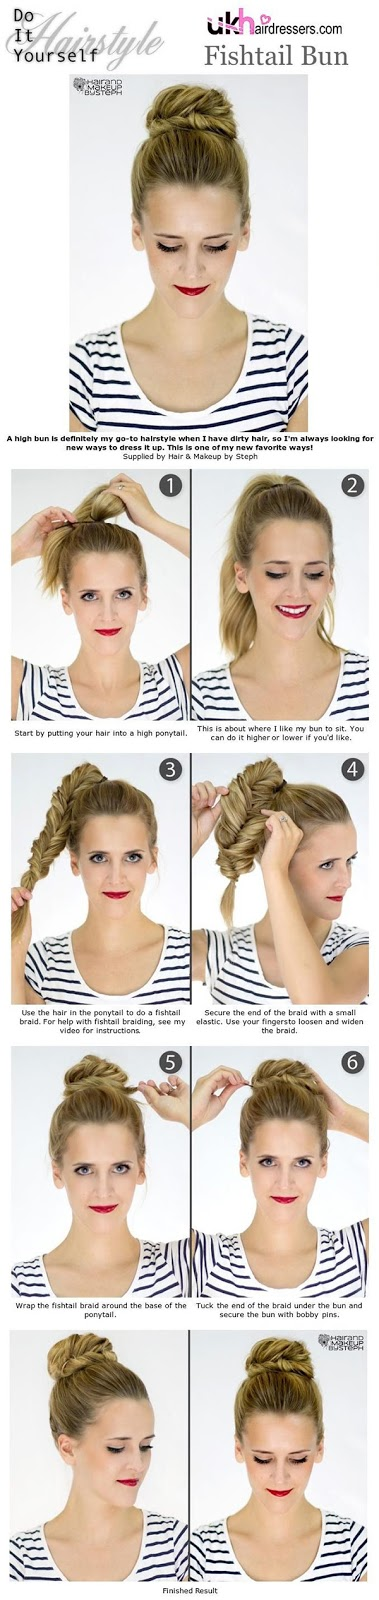 26+ Easy No-Heat Hairstyles | Latest Outfit Ideas